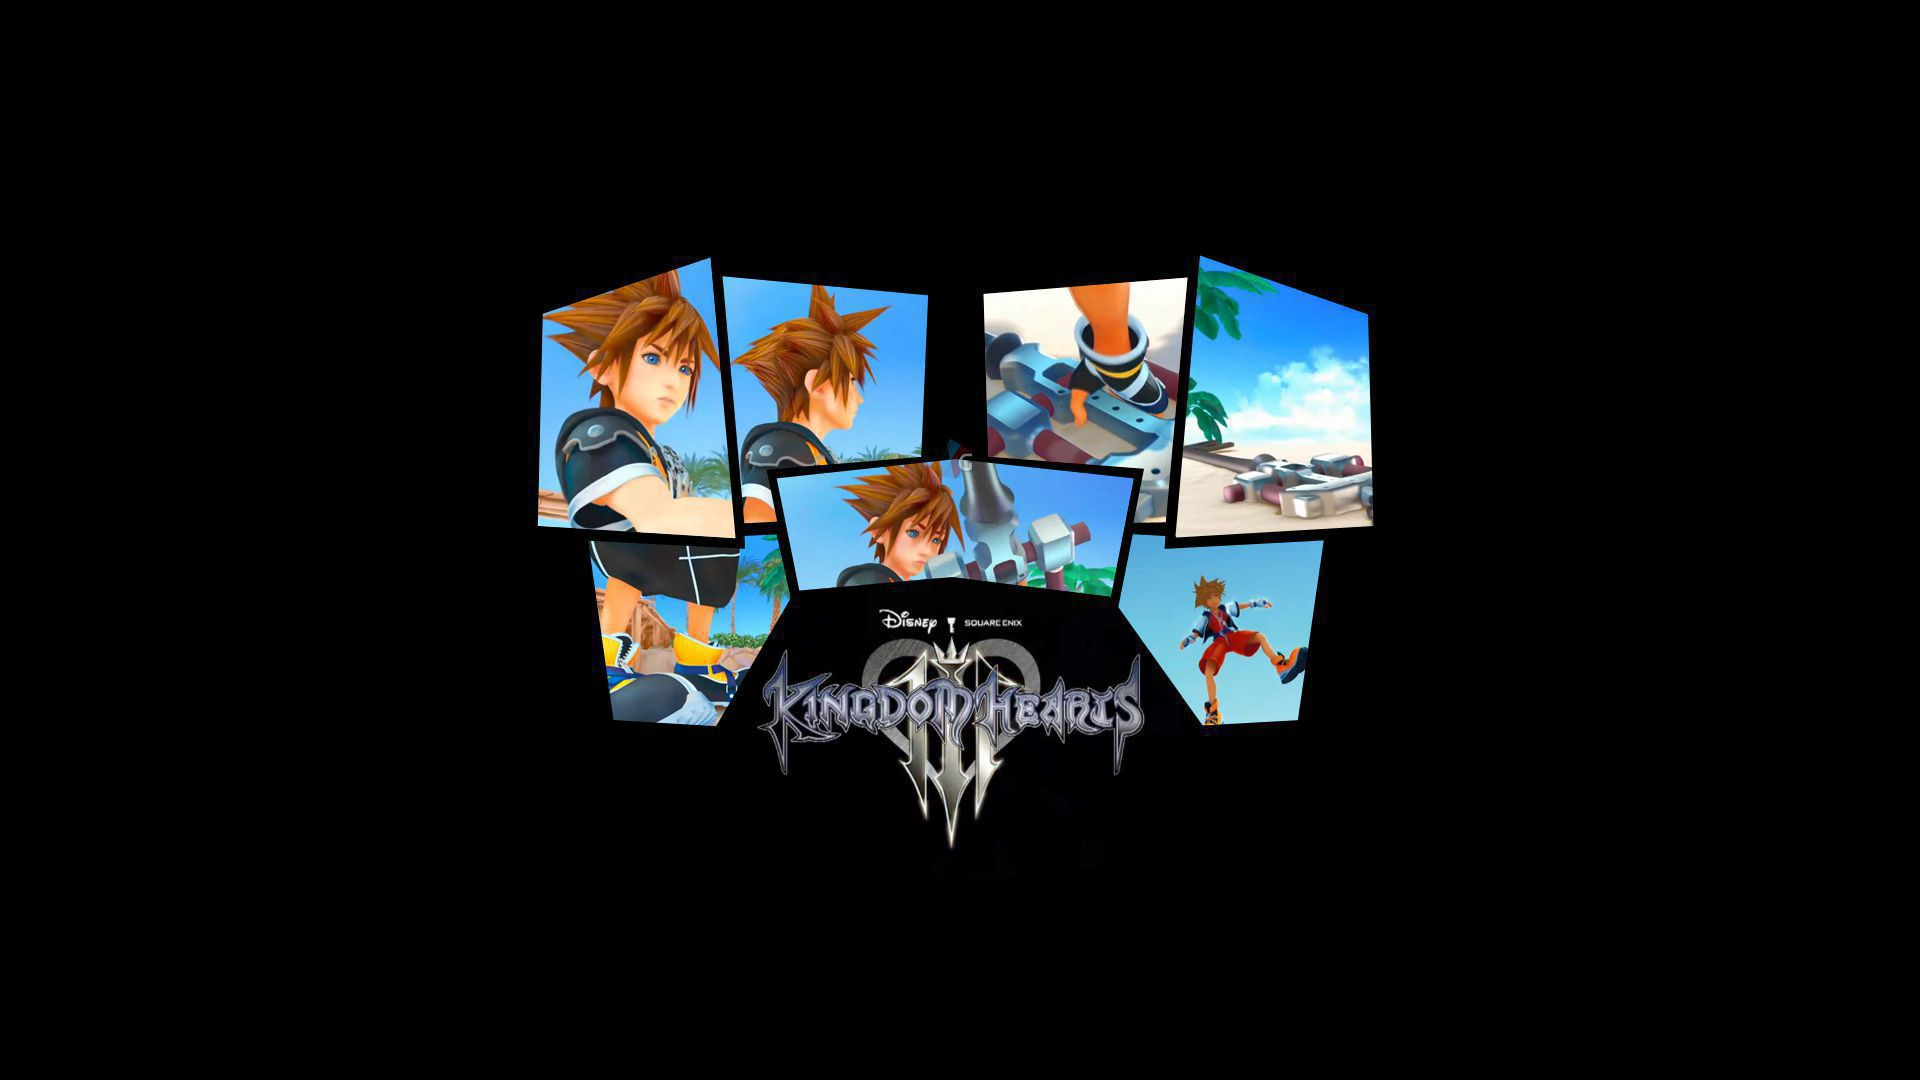 Kingdom Hearts 3 Gallery